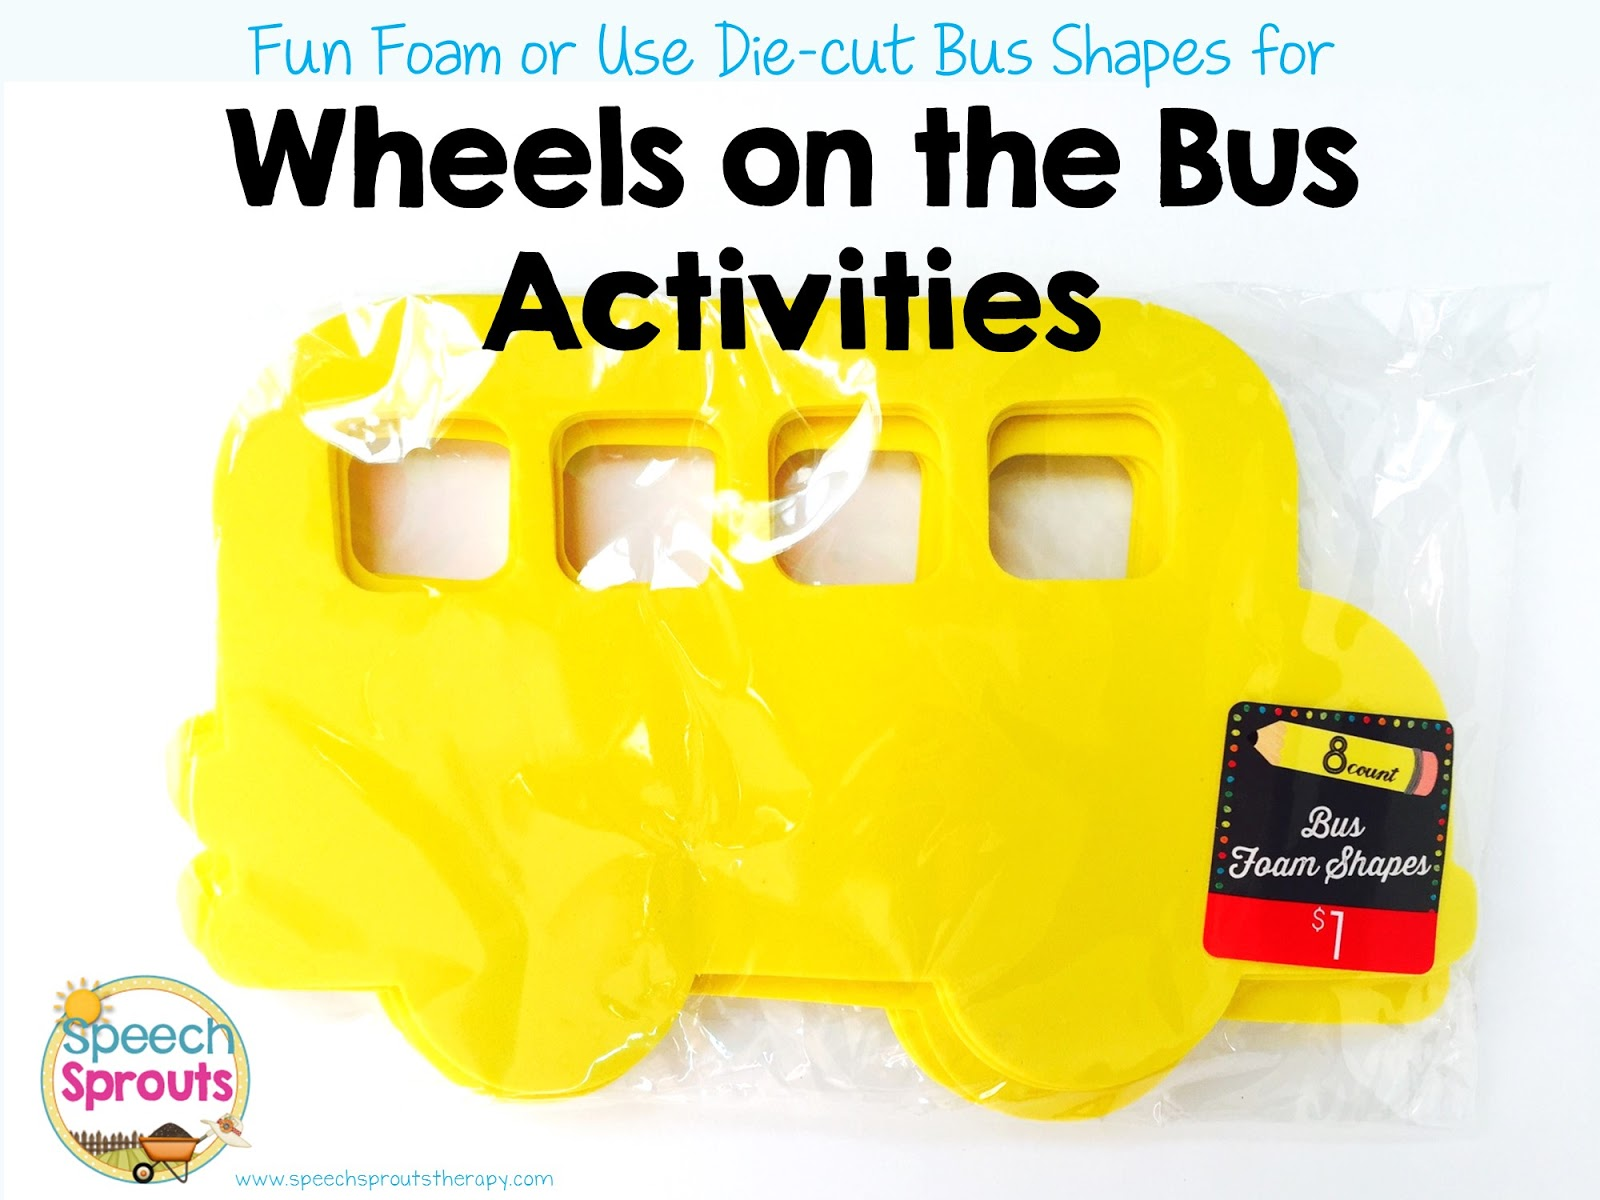 worksheet Wheels On The Bus Printable Worksheets speech sprouts october 2015 wheels on the bus activities for and language